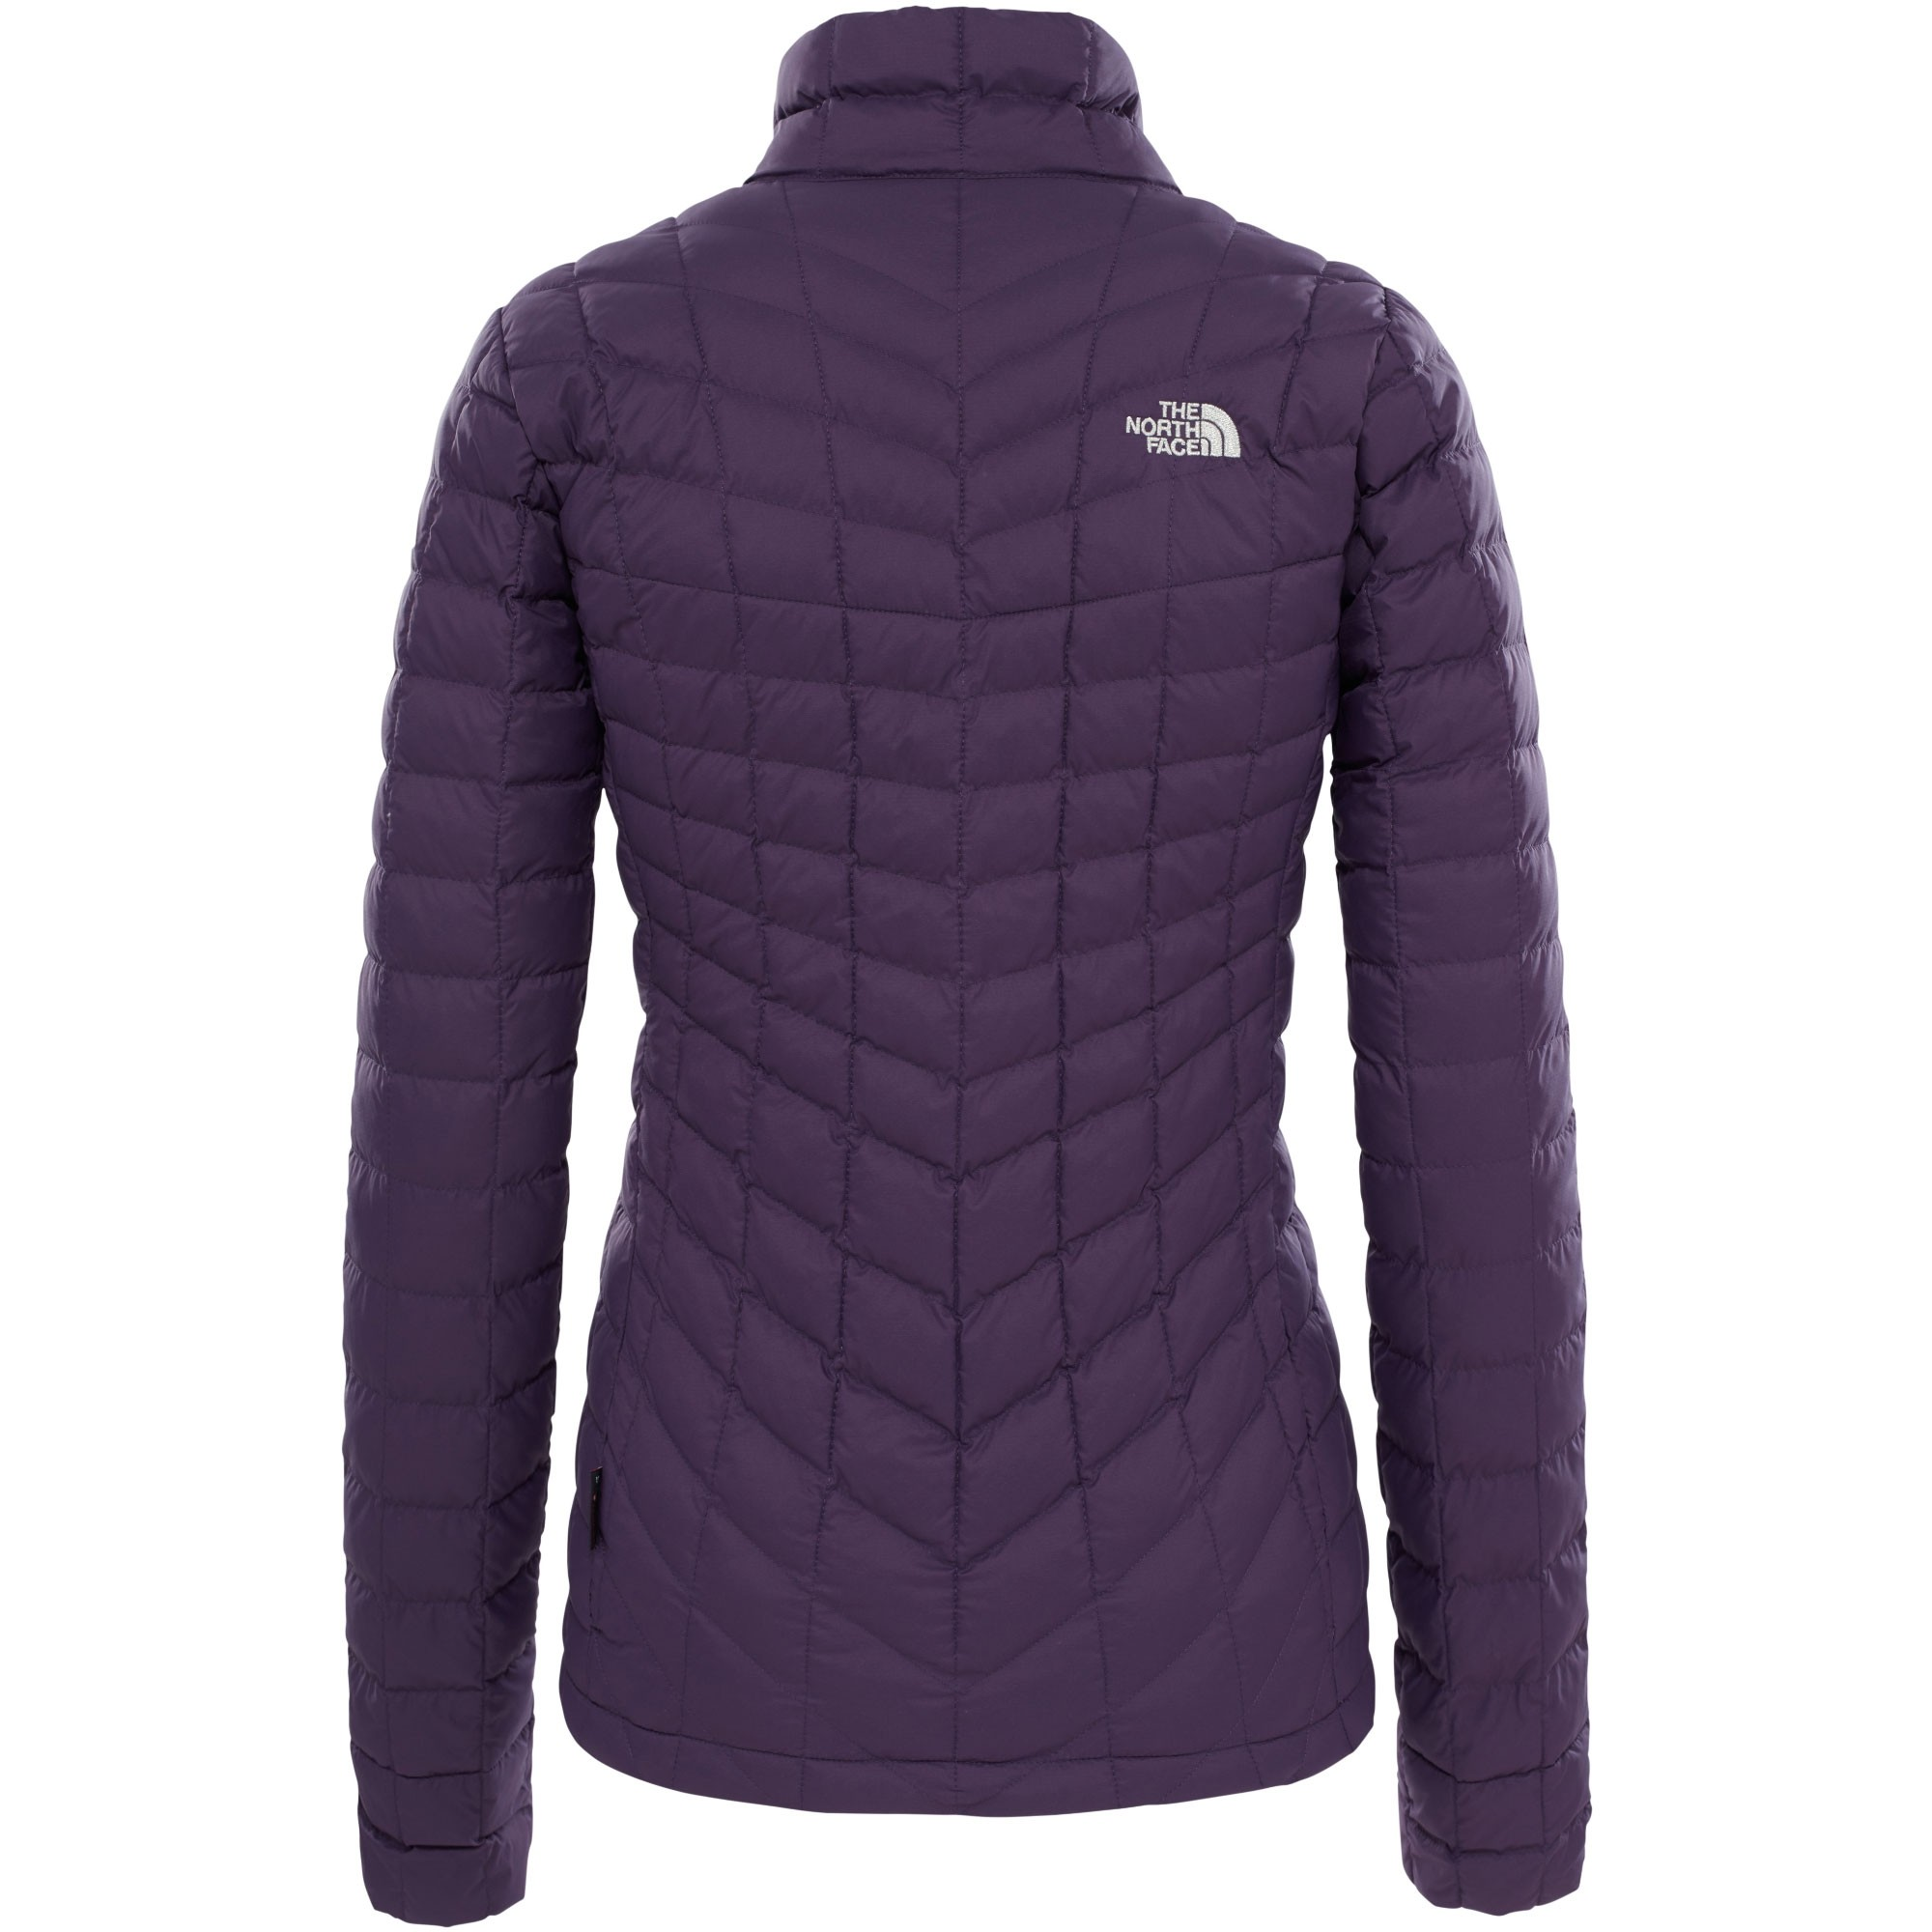 The-North-Face-Womens-Thermoball-Full-Zip-Jacket-Dark-Eggplant-Purple-Metallic-Silver